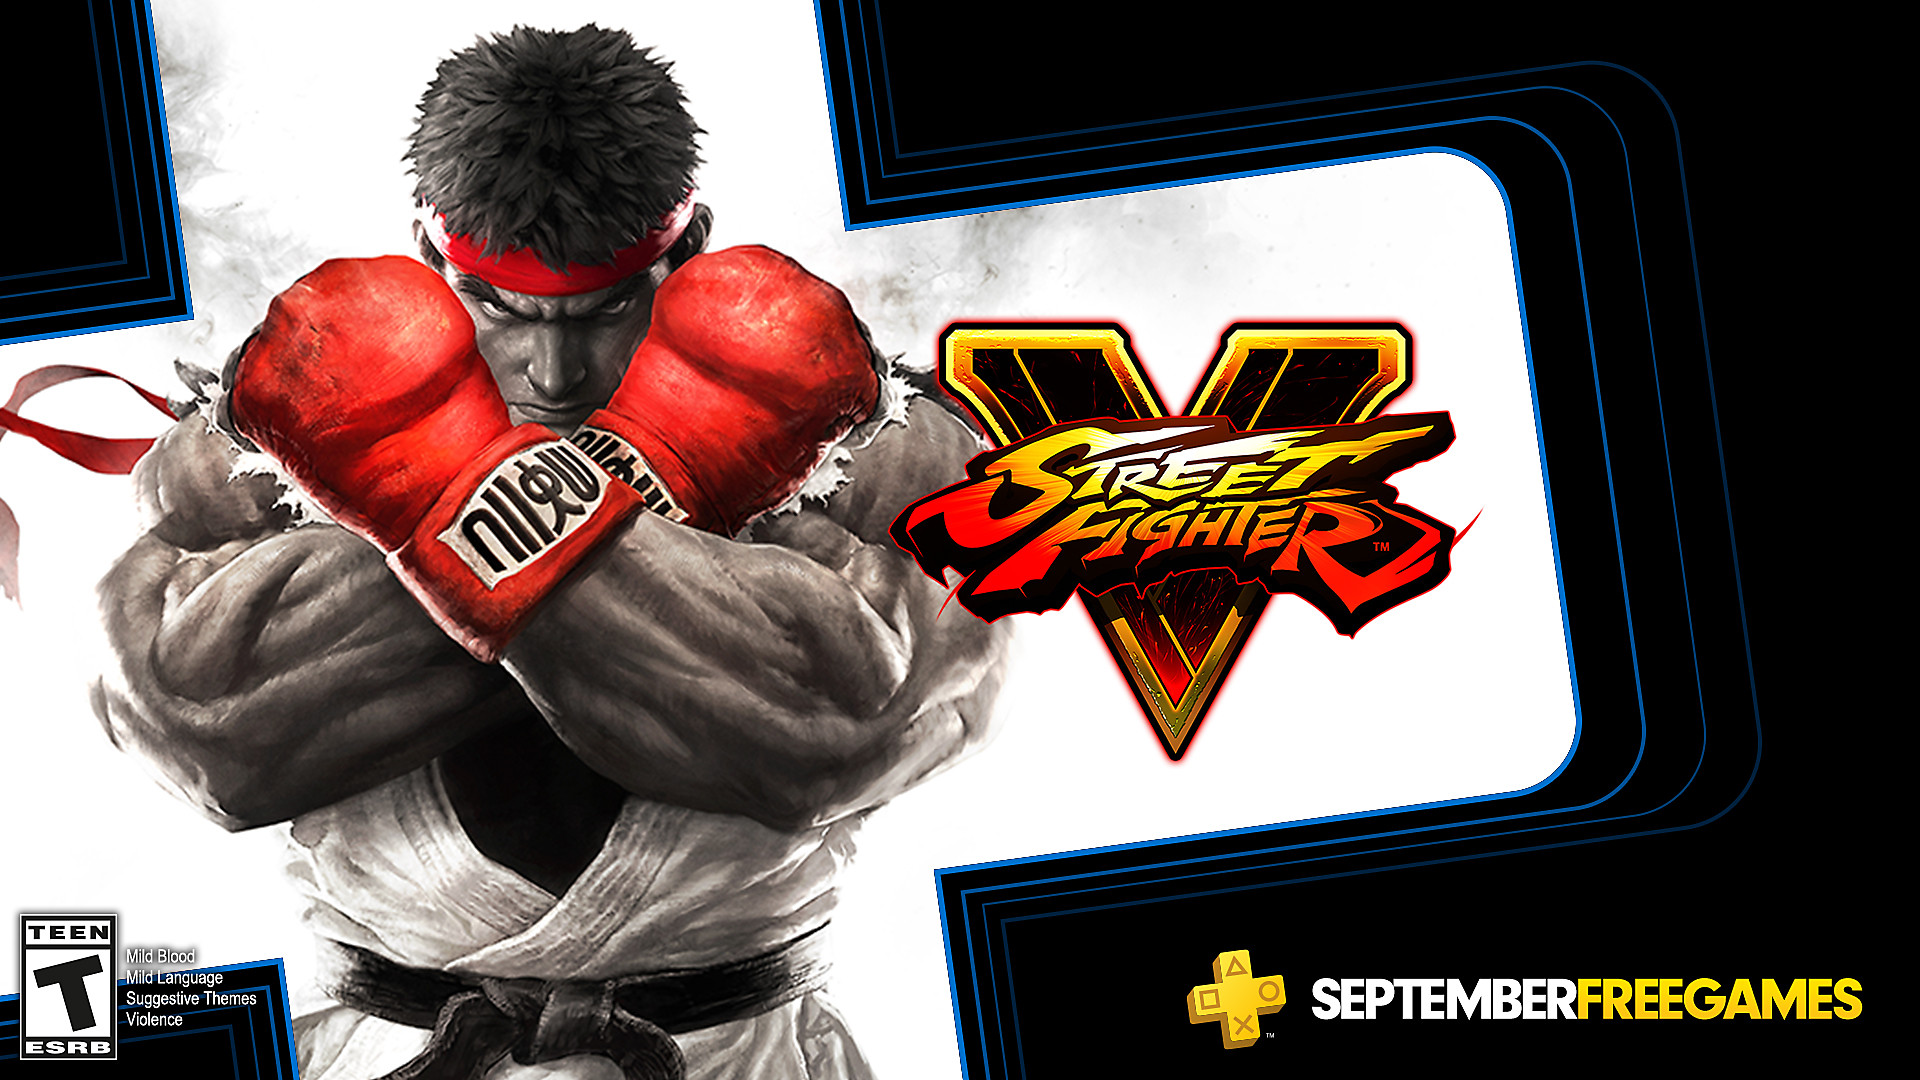 Click here to get Street Fighter V free from the PlayStation Store for PlayStation Plus members.